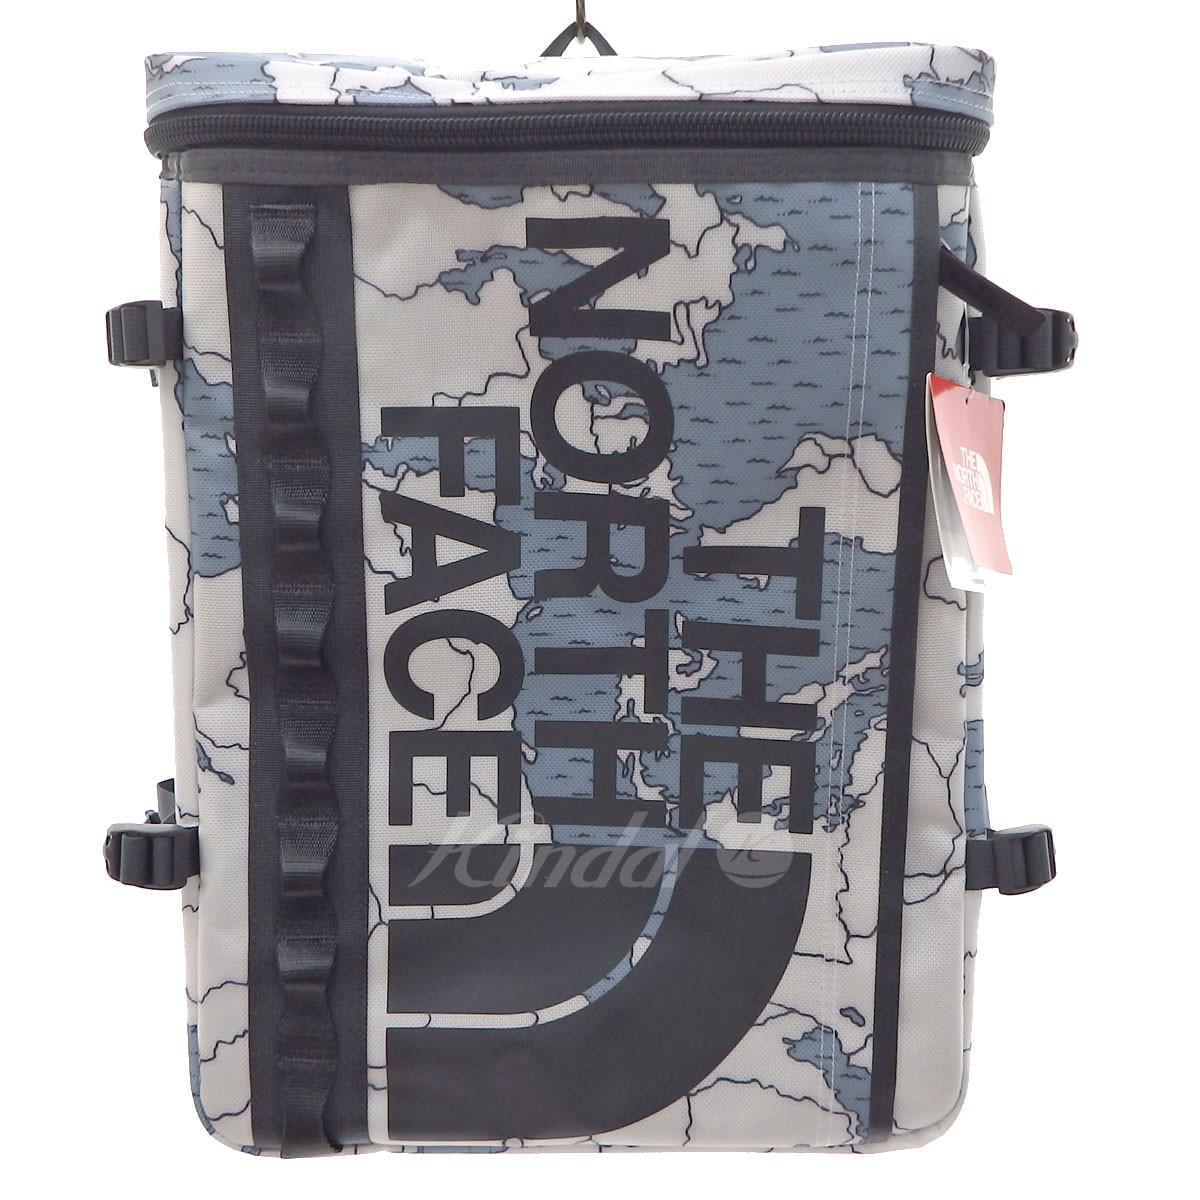 THE NORTH FACE NM81630 BC FUSE BOX backpack white X gray (the North Face)